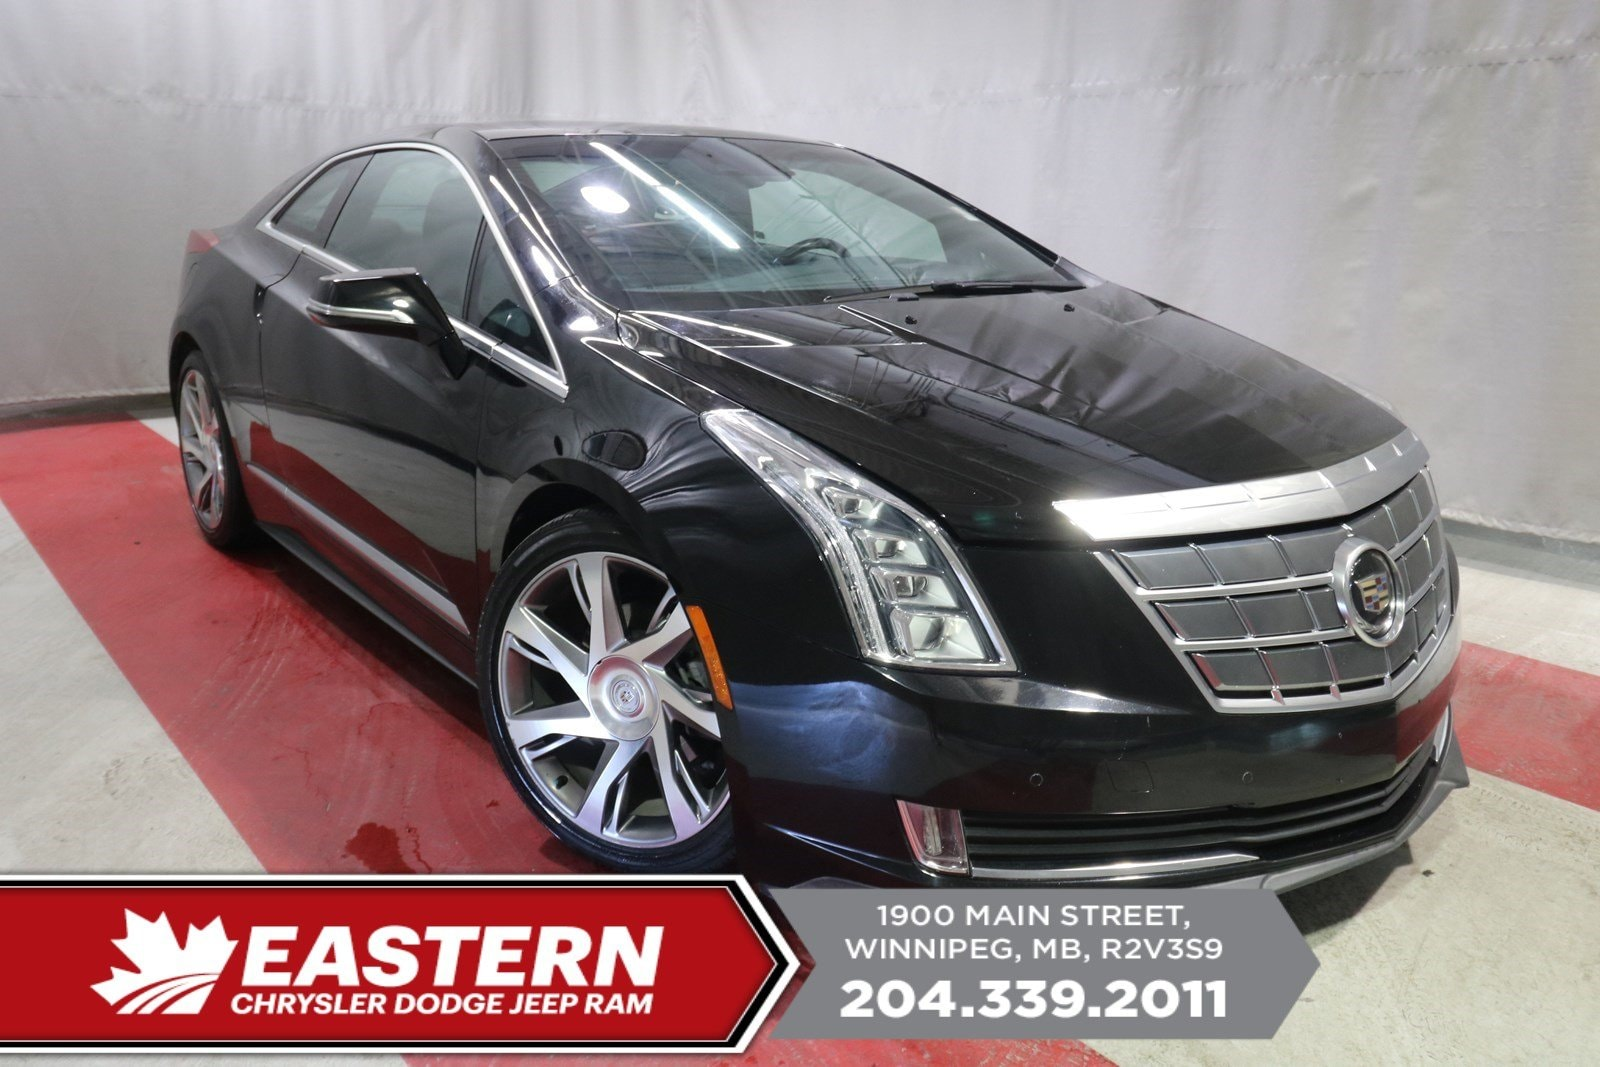 2014 Cadillac ELR 2dr Cpe   Bluetooth   Backup Cam   Coupe